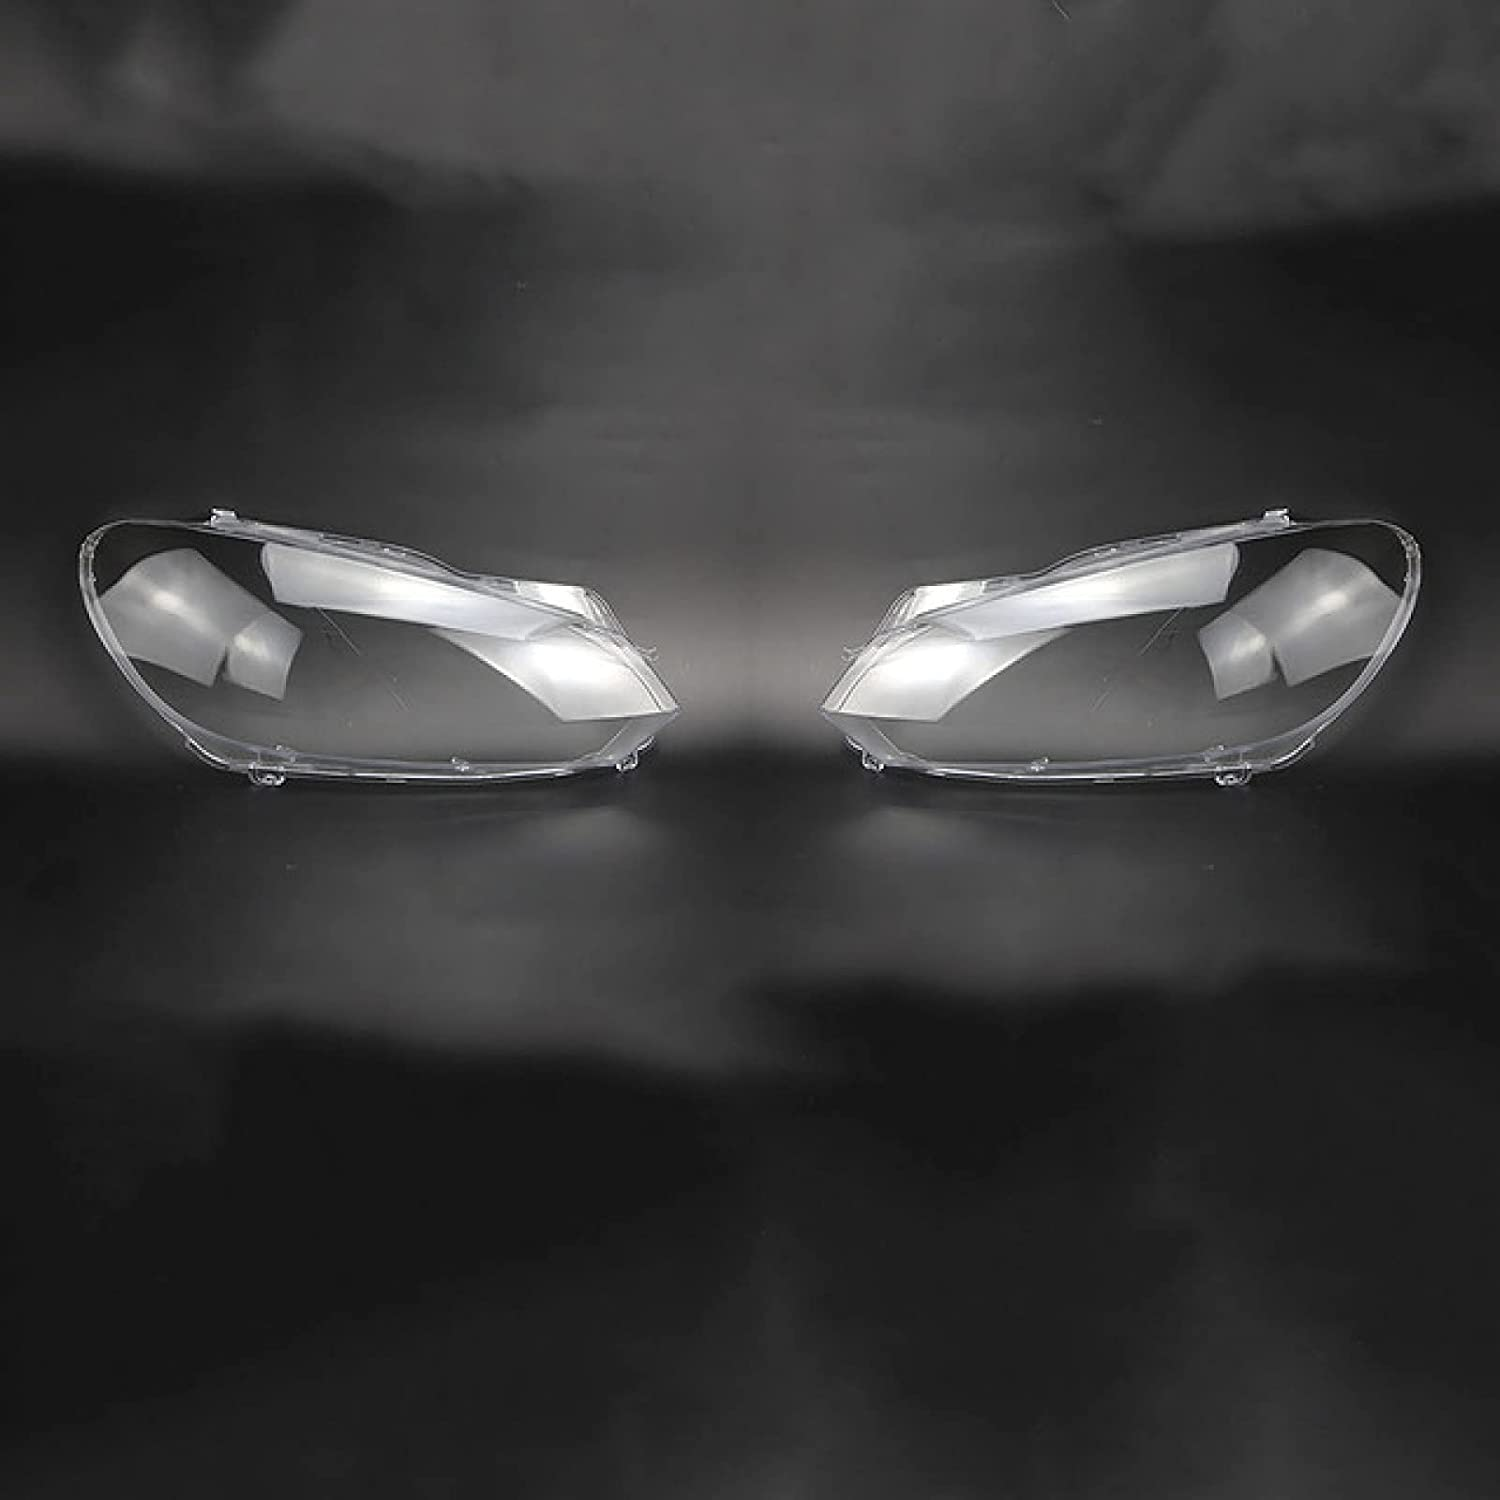 RelaxToday Car Front Headlight Sh Transparent Ranking TOP19 Cover Year-end gift Headlamp